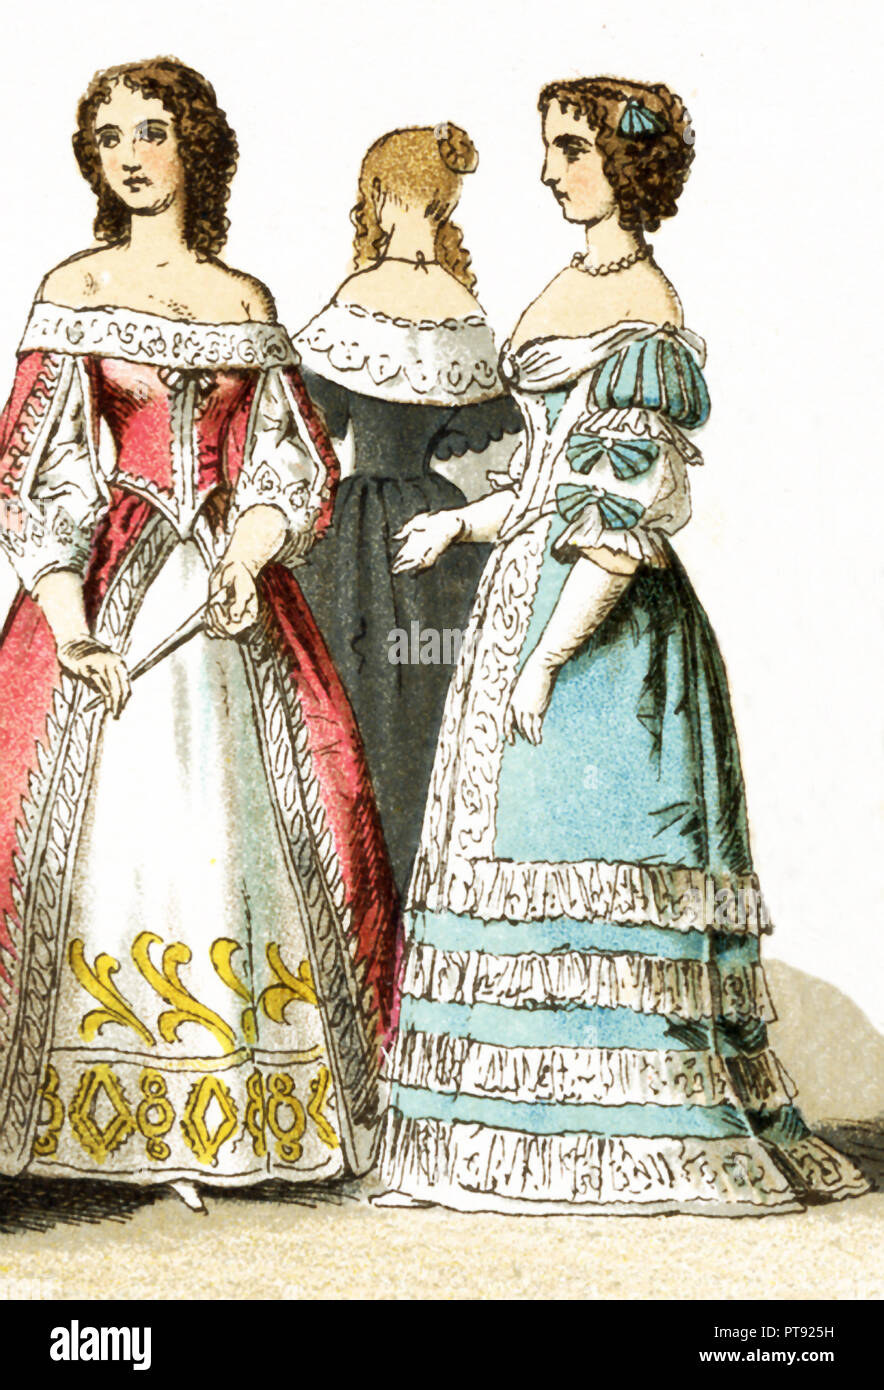 The Figures represented here are all French ladies of the court living in the 17th century, specifically between 1600 and 1670.  The illustration dates to 1882. - Stock Image